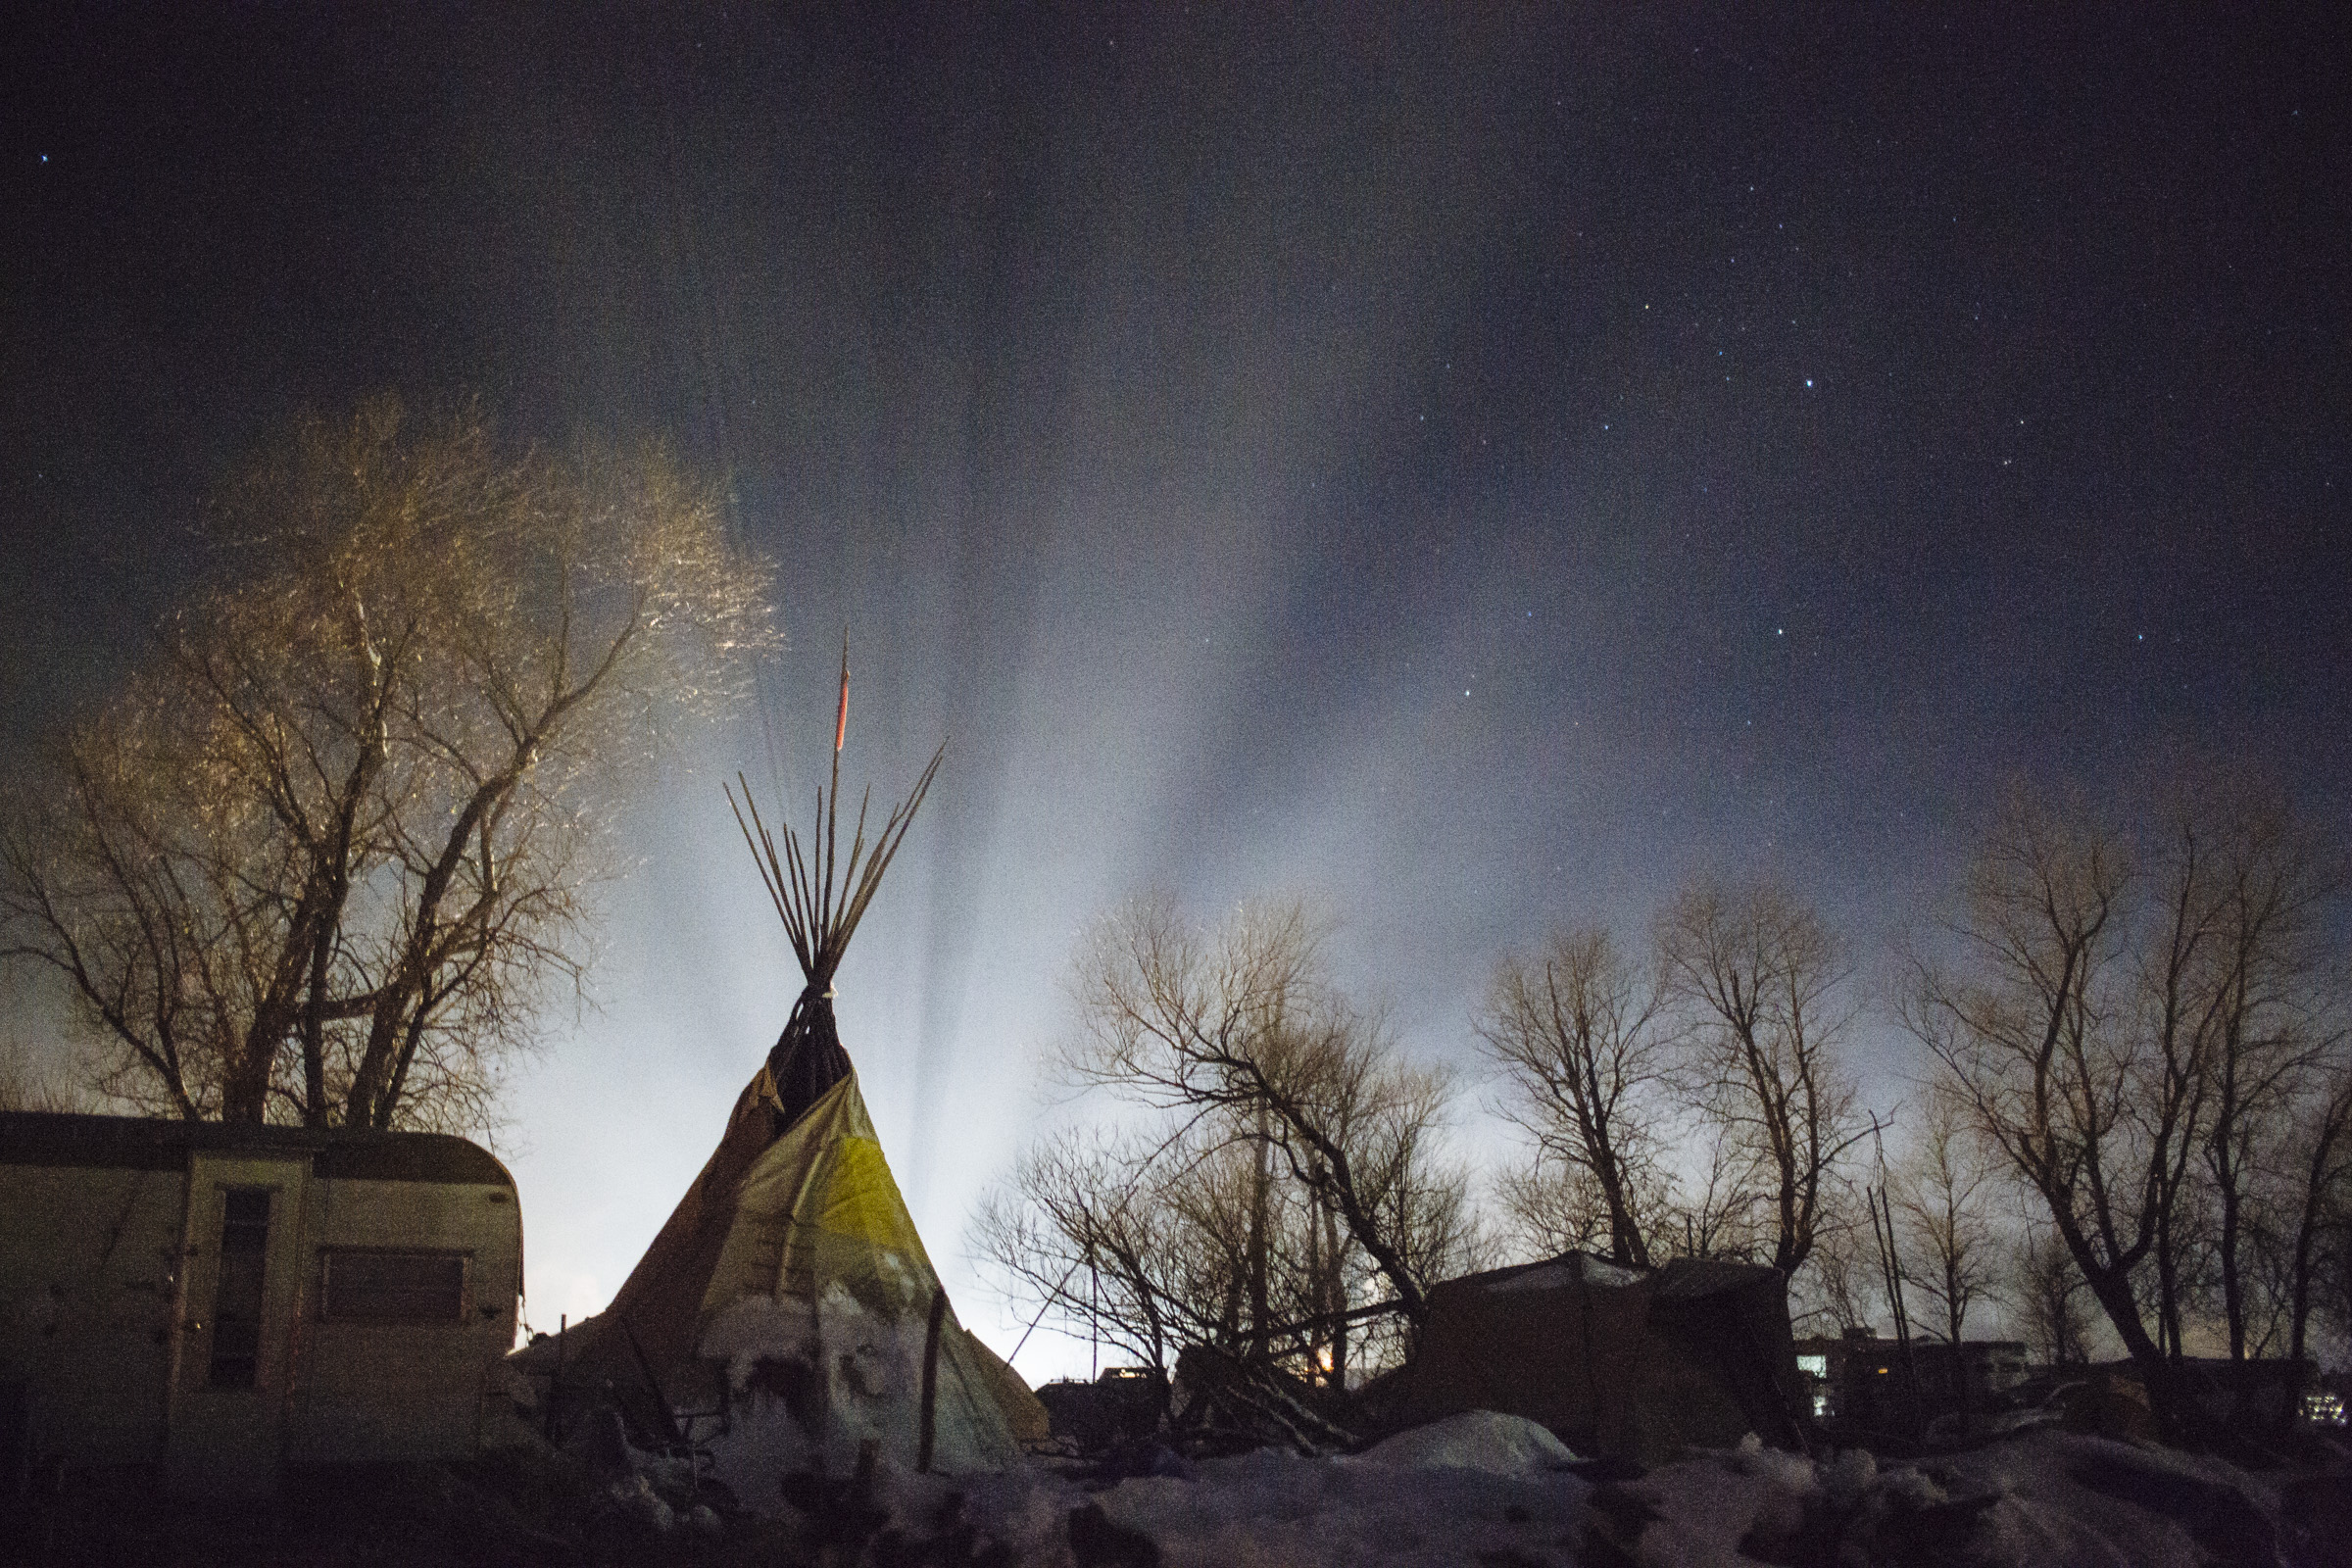 Car headlights illuminate fog surrounding a tepee at the Oceti Sakowin Camp near Cannon Ball, North Dakota on Sunday, Dec. 4, 2016. (Photo by Angus Mordant/GroundTruth)